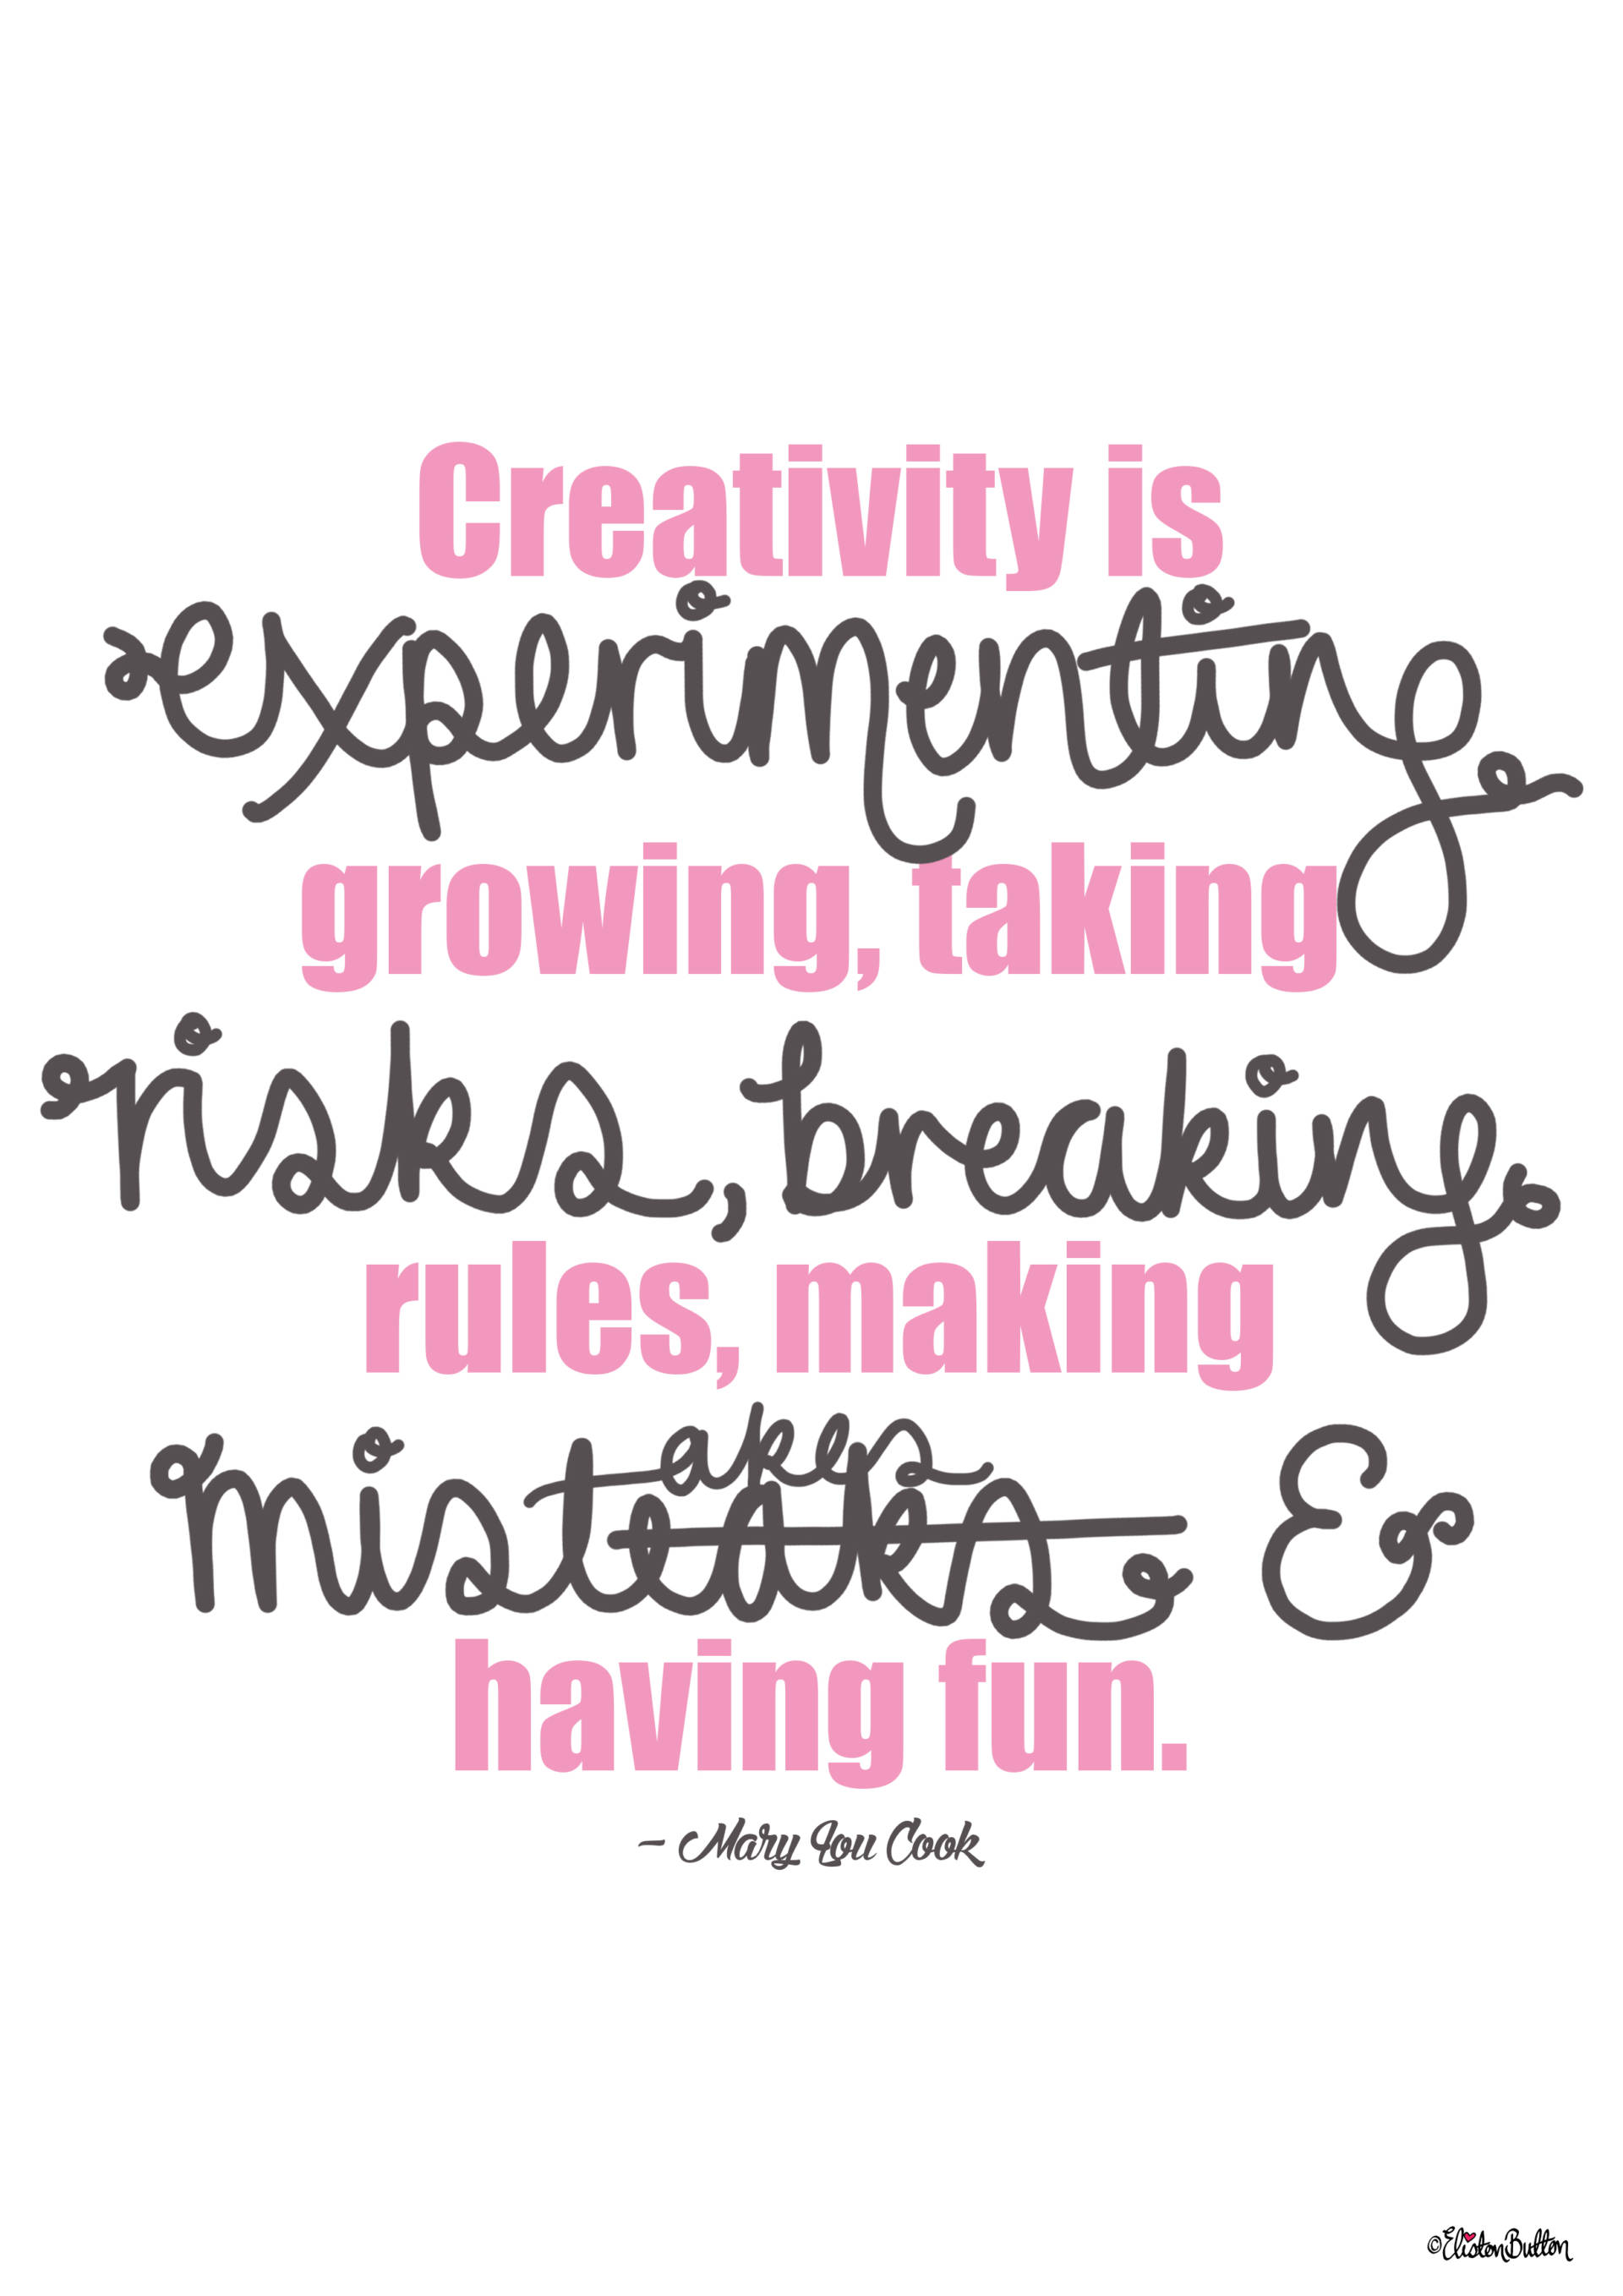 Making Mistakes and Having Fun - Mary Lou Cook Quote - Type and Hand Lettering by Eliston Button - Why It's Okay To Make Mistakes (and a Life Update) at www.elistonbutton.com - Eliston Button - That Crafty Kid – Art, Design, Craft & Adventure.